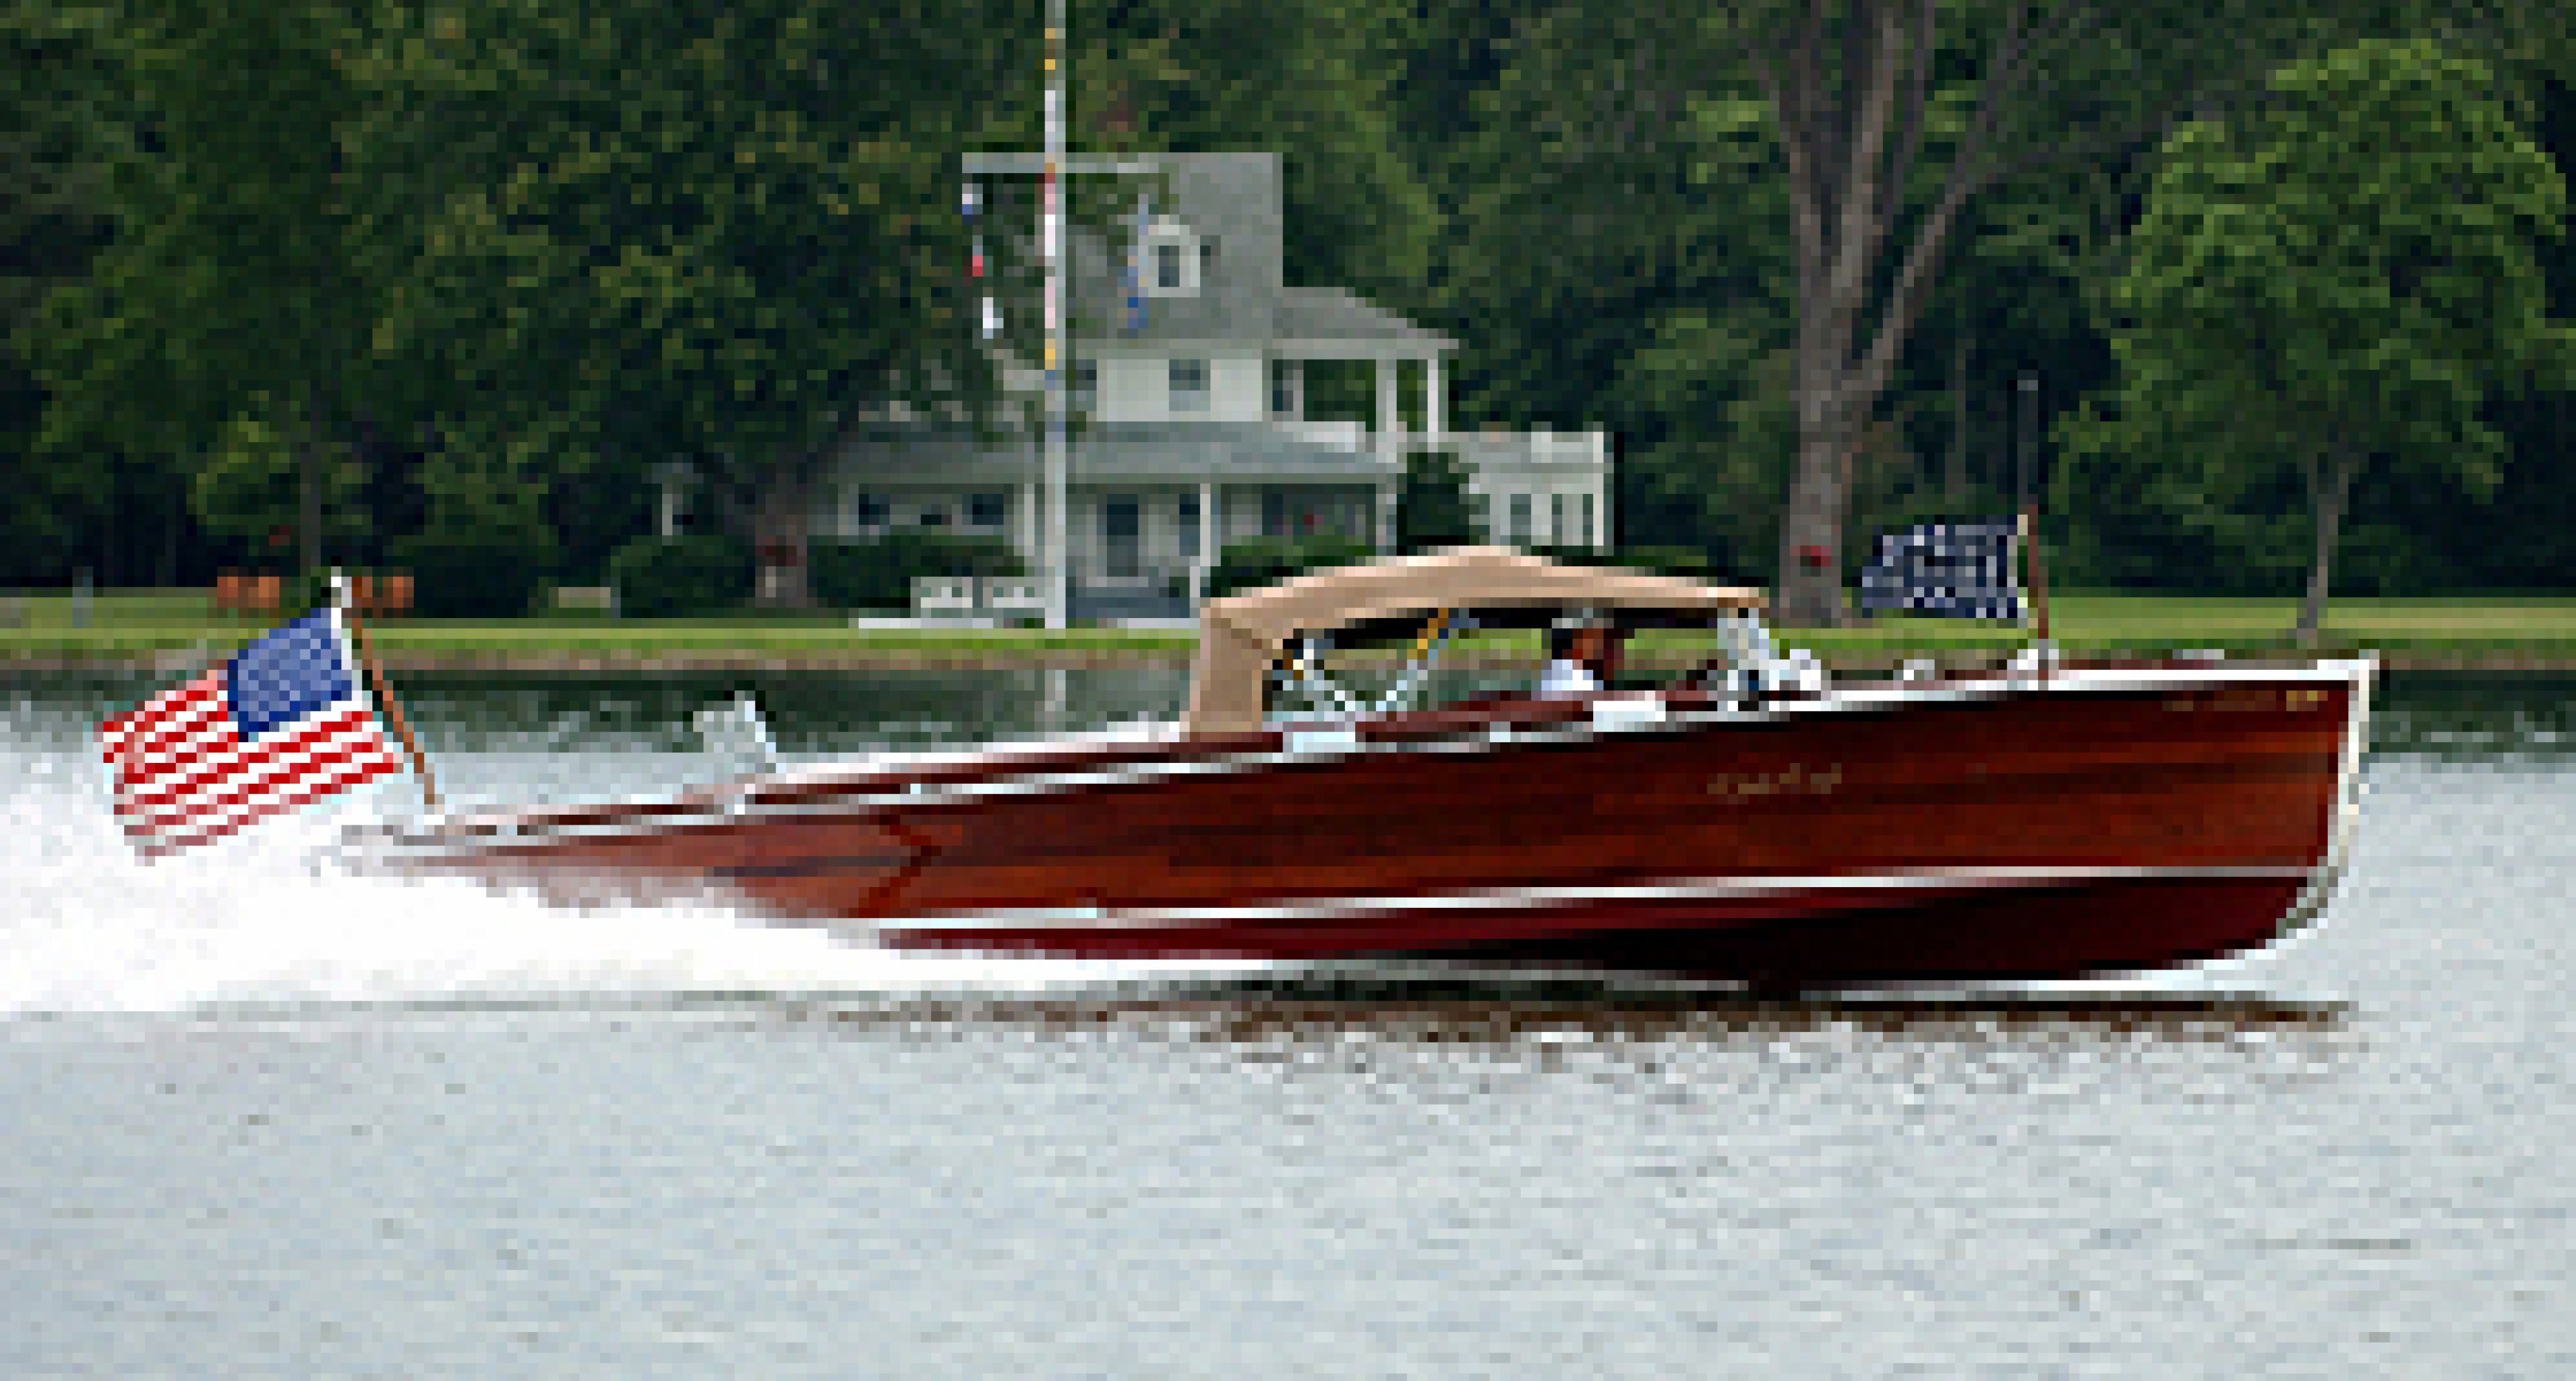 100 Vintage Wooden Boats to Be Sold Without Reserve